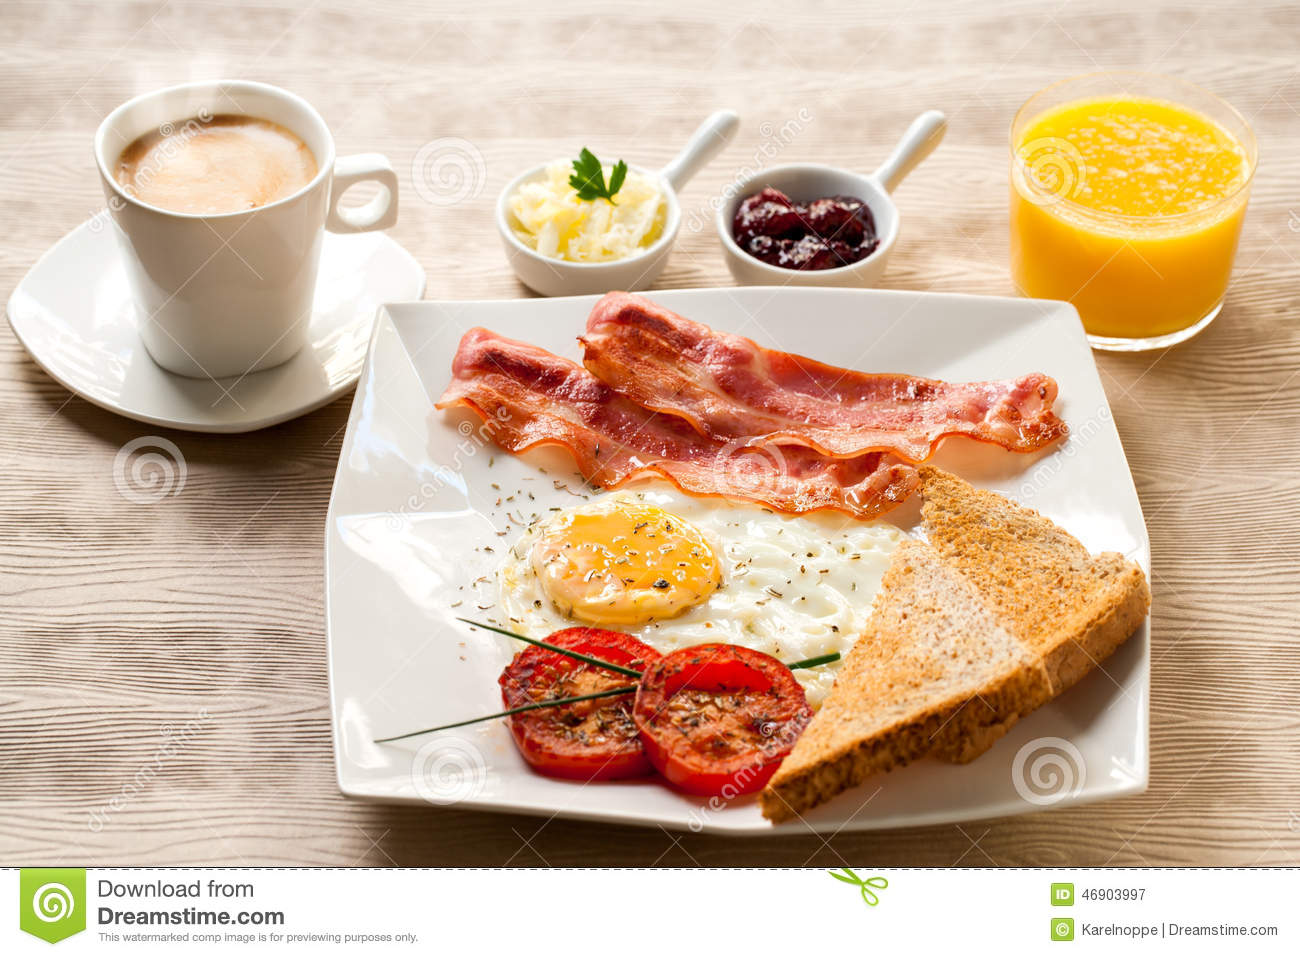 Continental Breakfast With Coffee And Orange Juice. Stock Photo - Image: 46903997